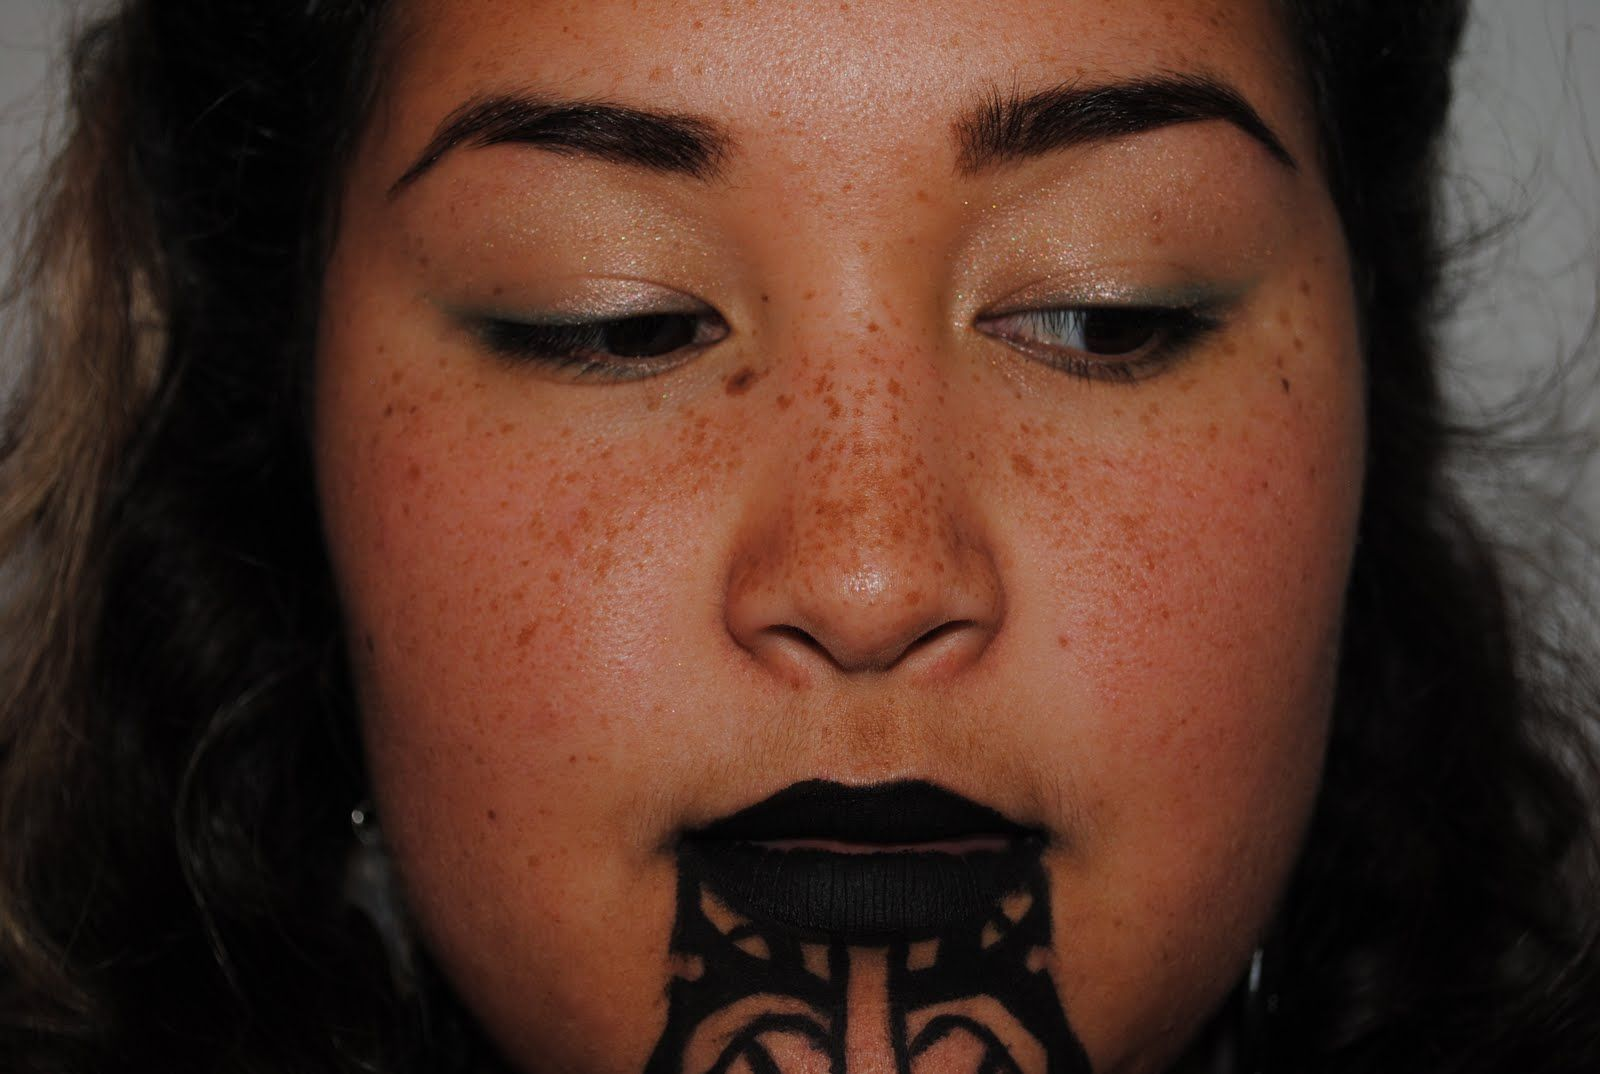 Female Maori Mouth Tattoos: ... Bored After The Bird S Eyes I Did So I Did A